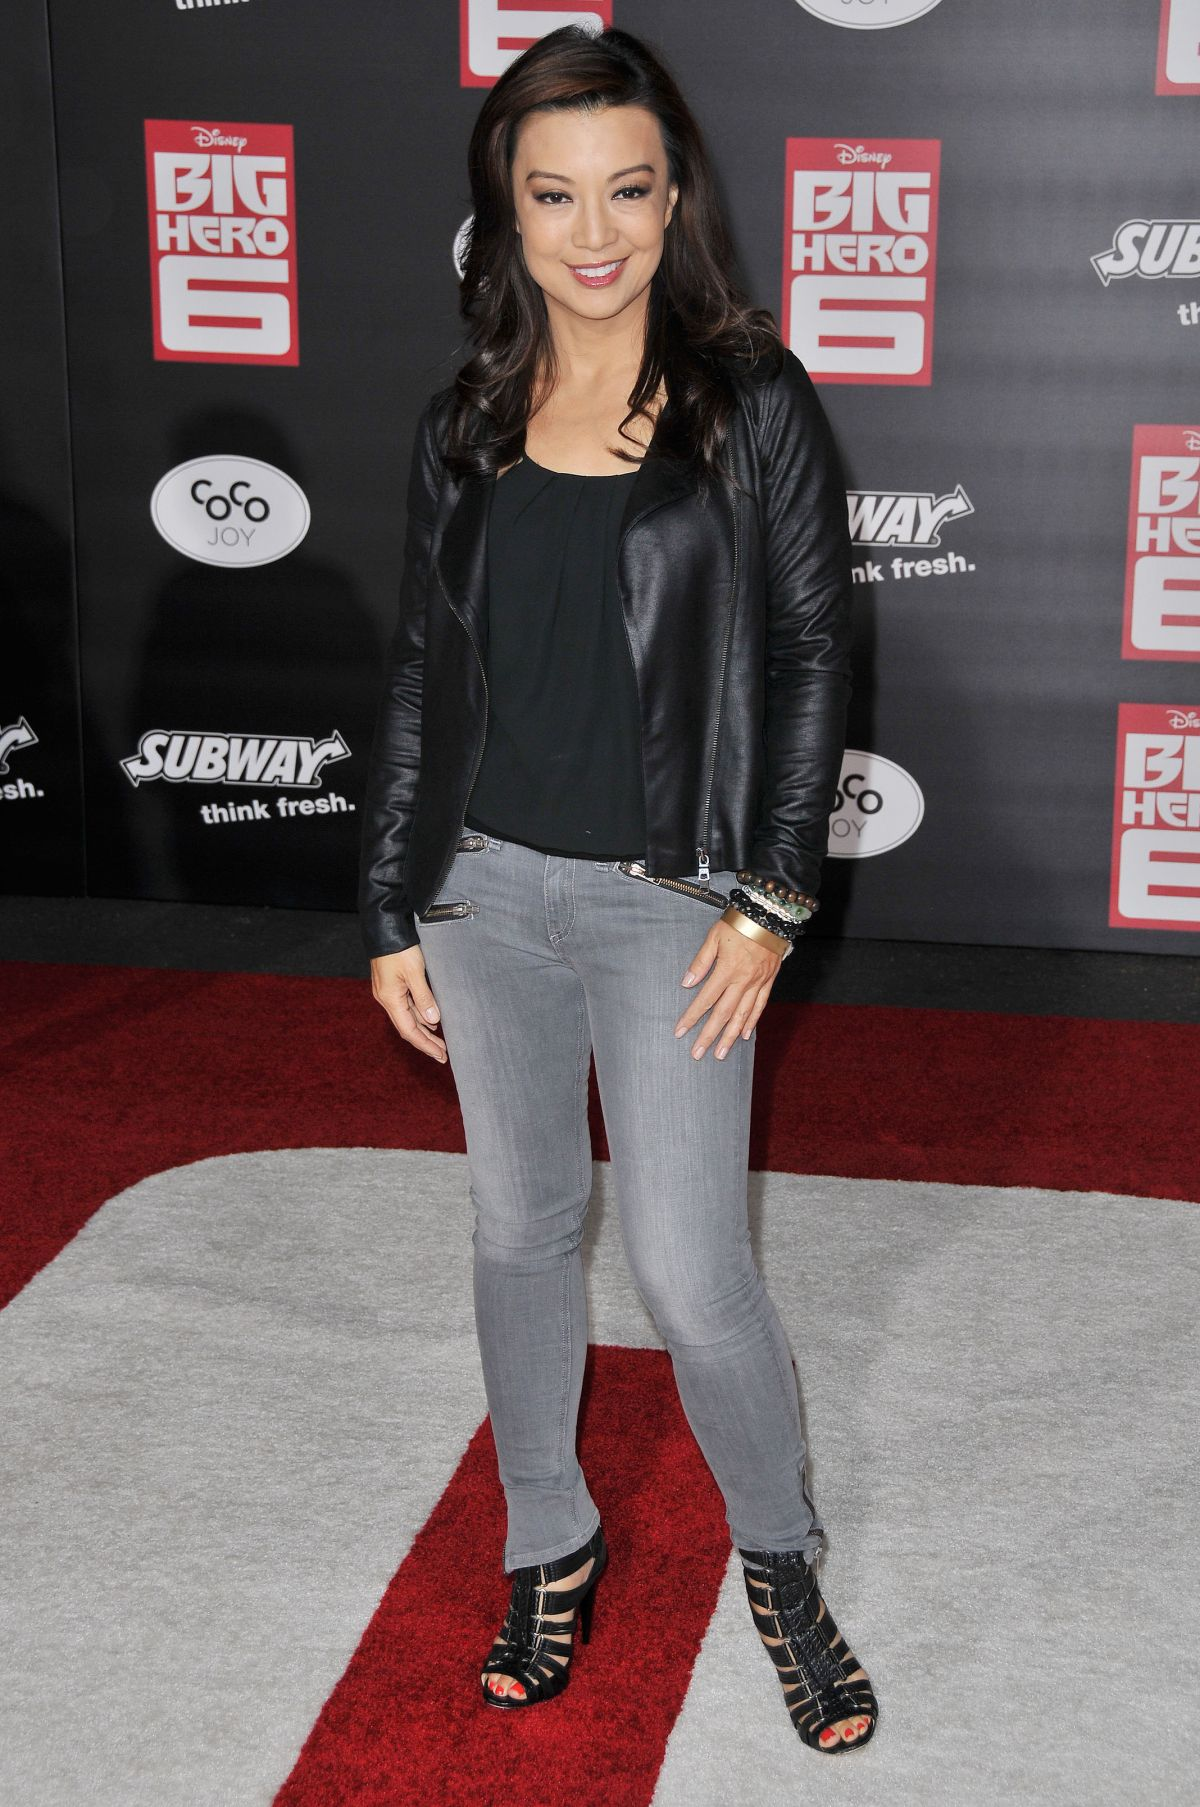 Ming Na Wen At Big Hero 6 Premiere In Hollywood Hawtcelebs